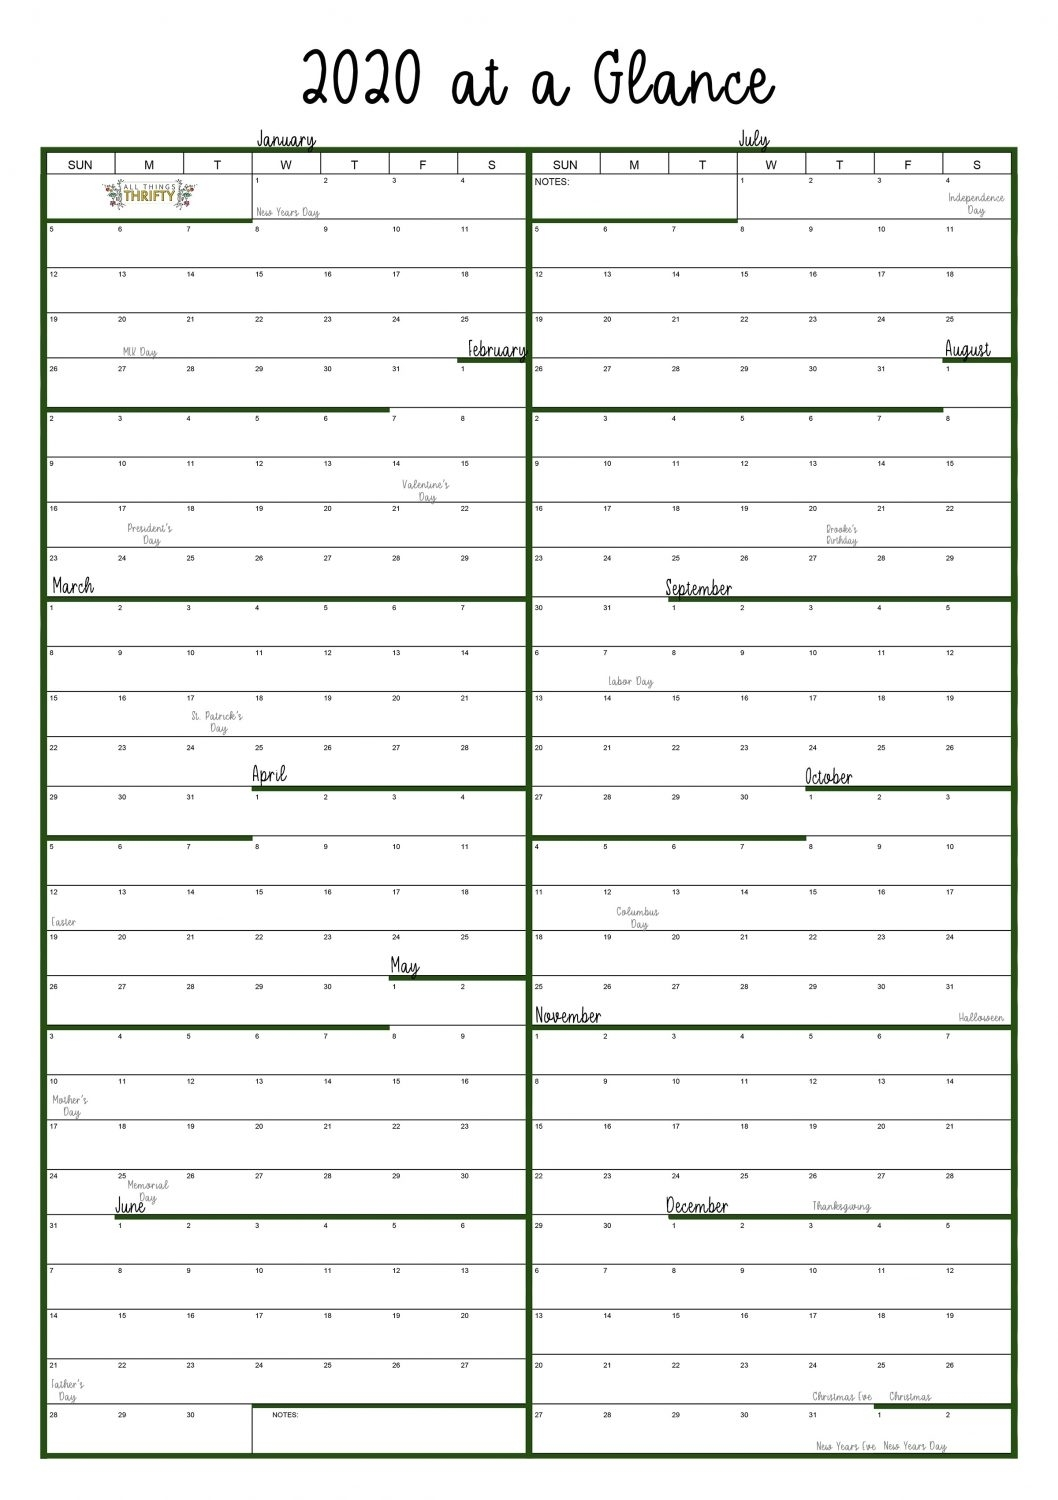 Year At A Glance Free Printable Calendar | All Things Thrifty for Free Printable Year At A Glance Calendars No Download 2020